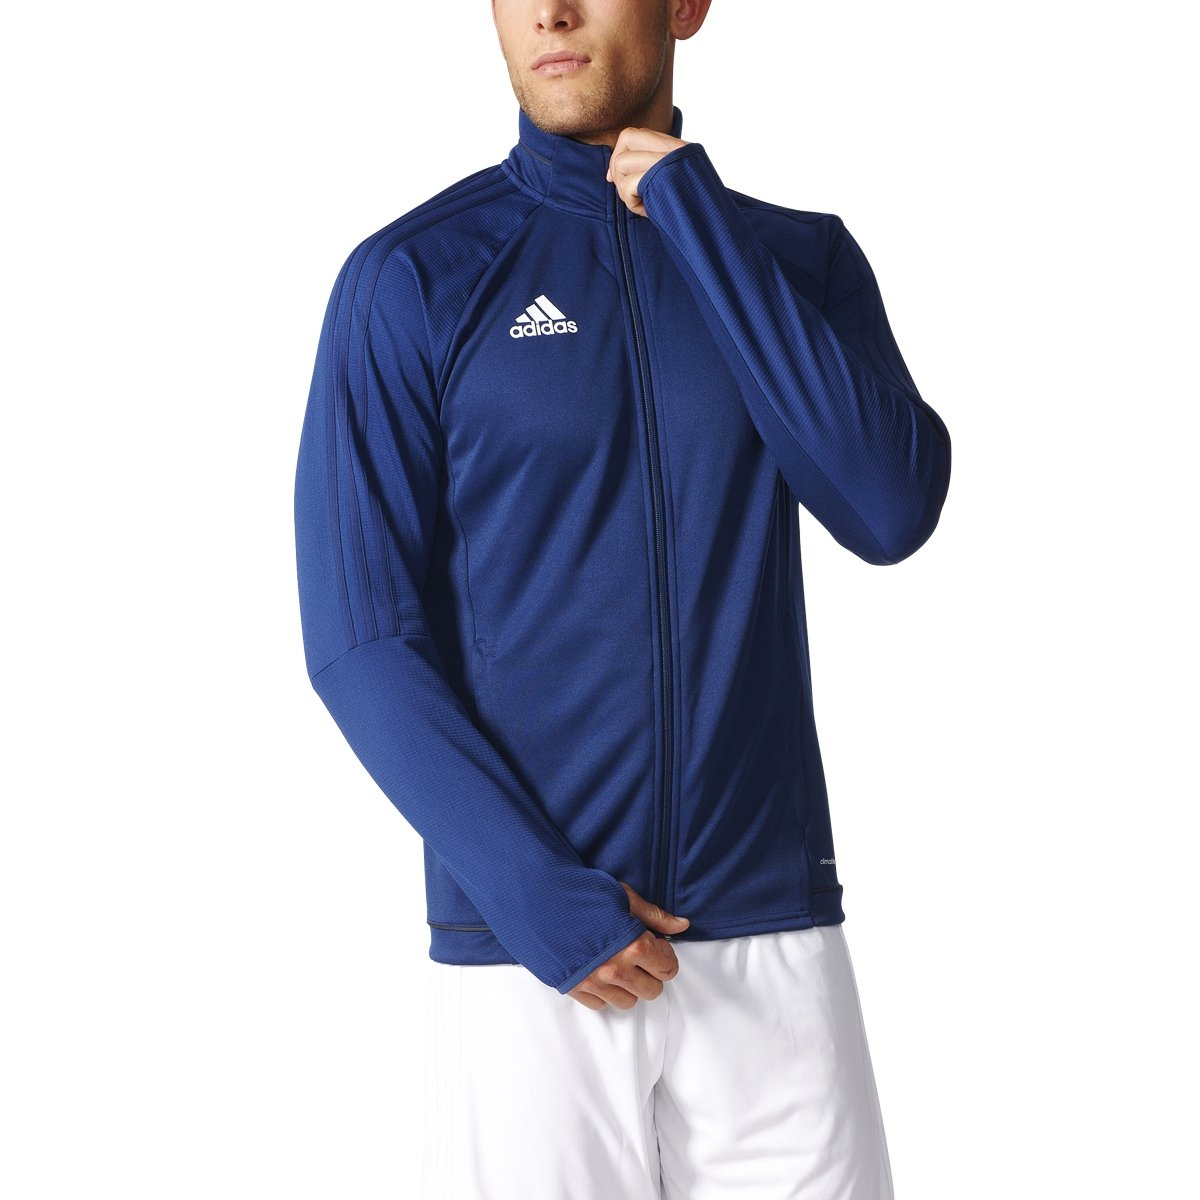 Adidas Tiro 17 Mens Soccer Training Jacket XS Dark Blue-Dark Grey-White by adidas